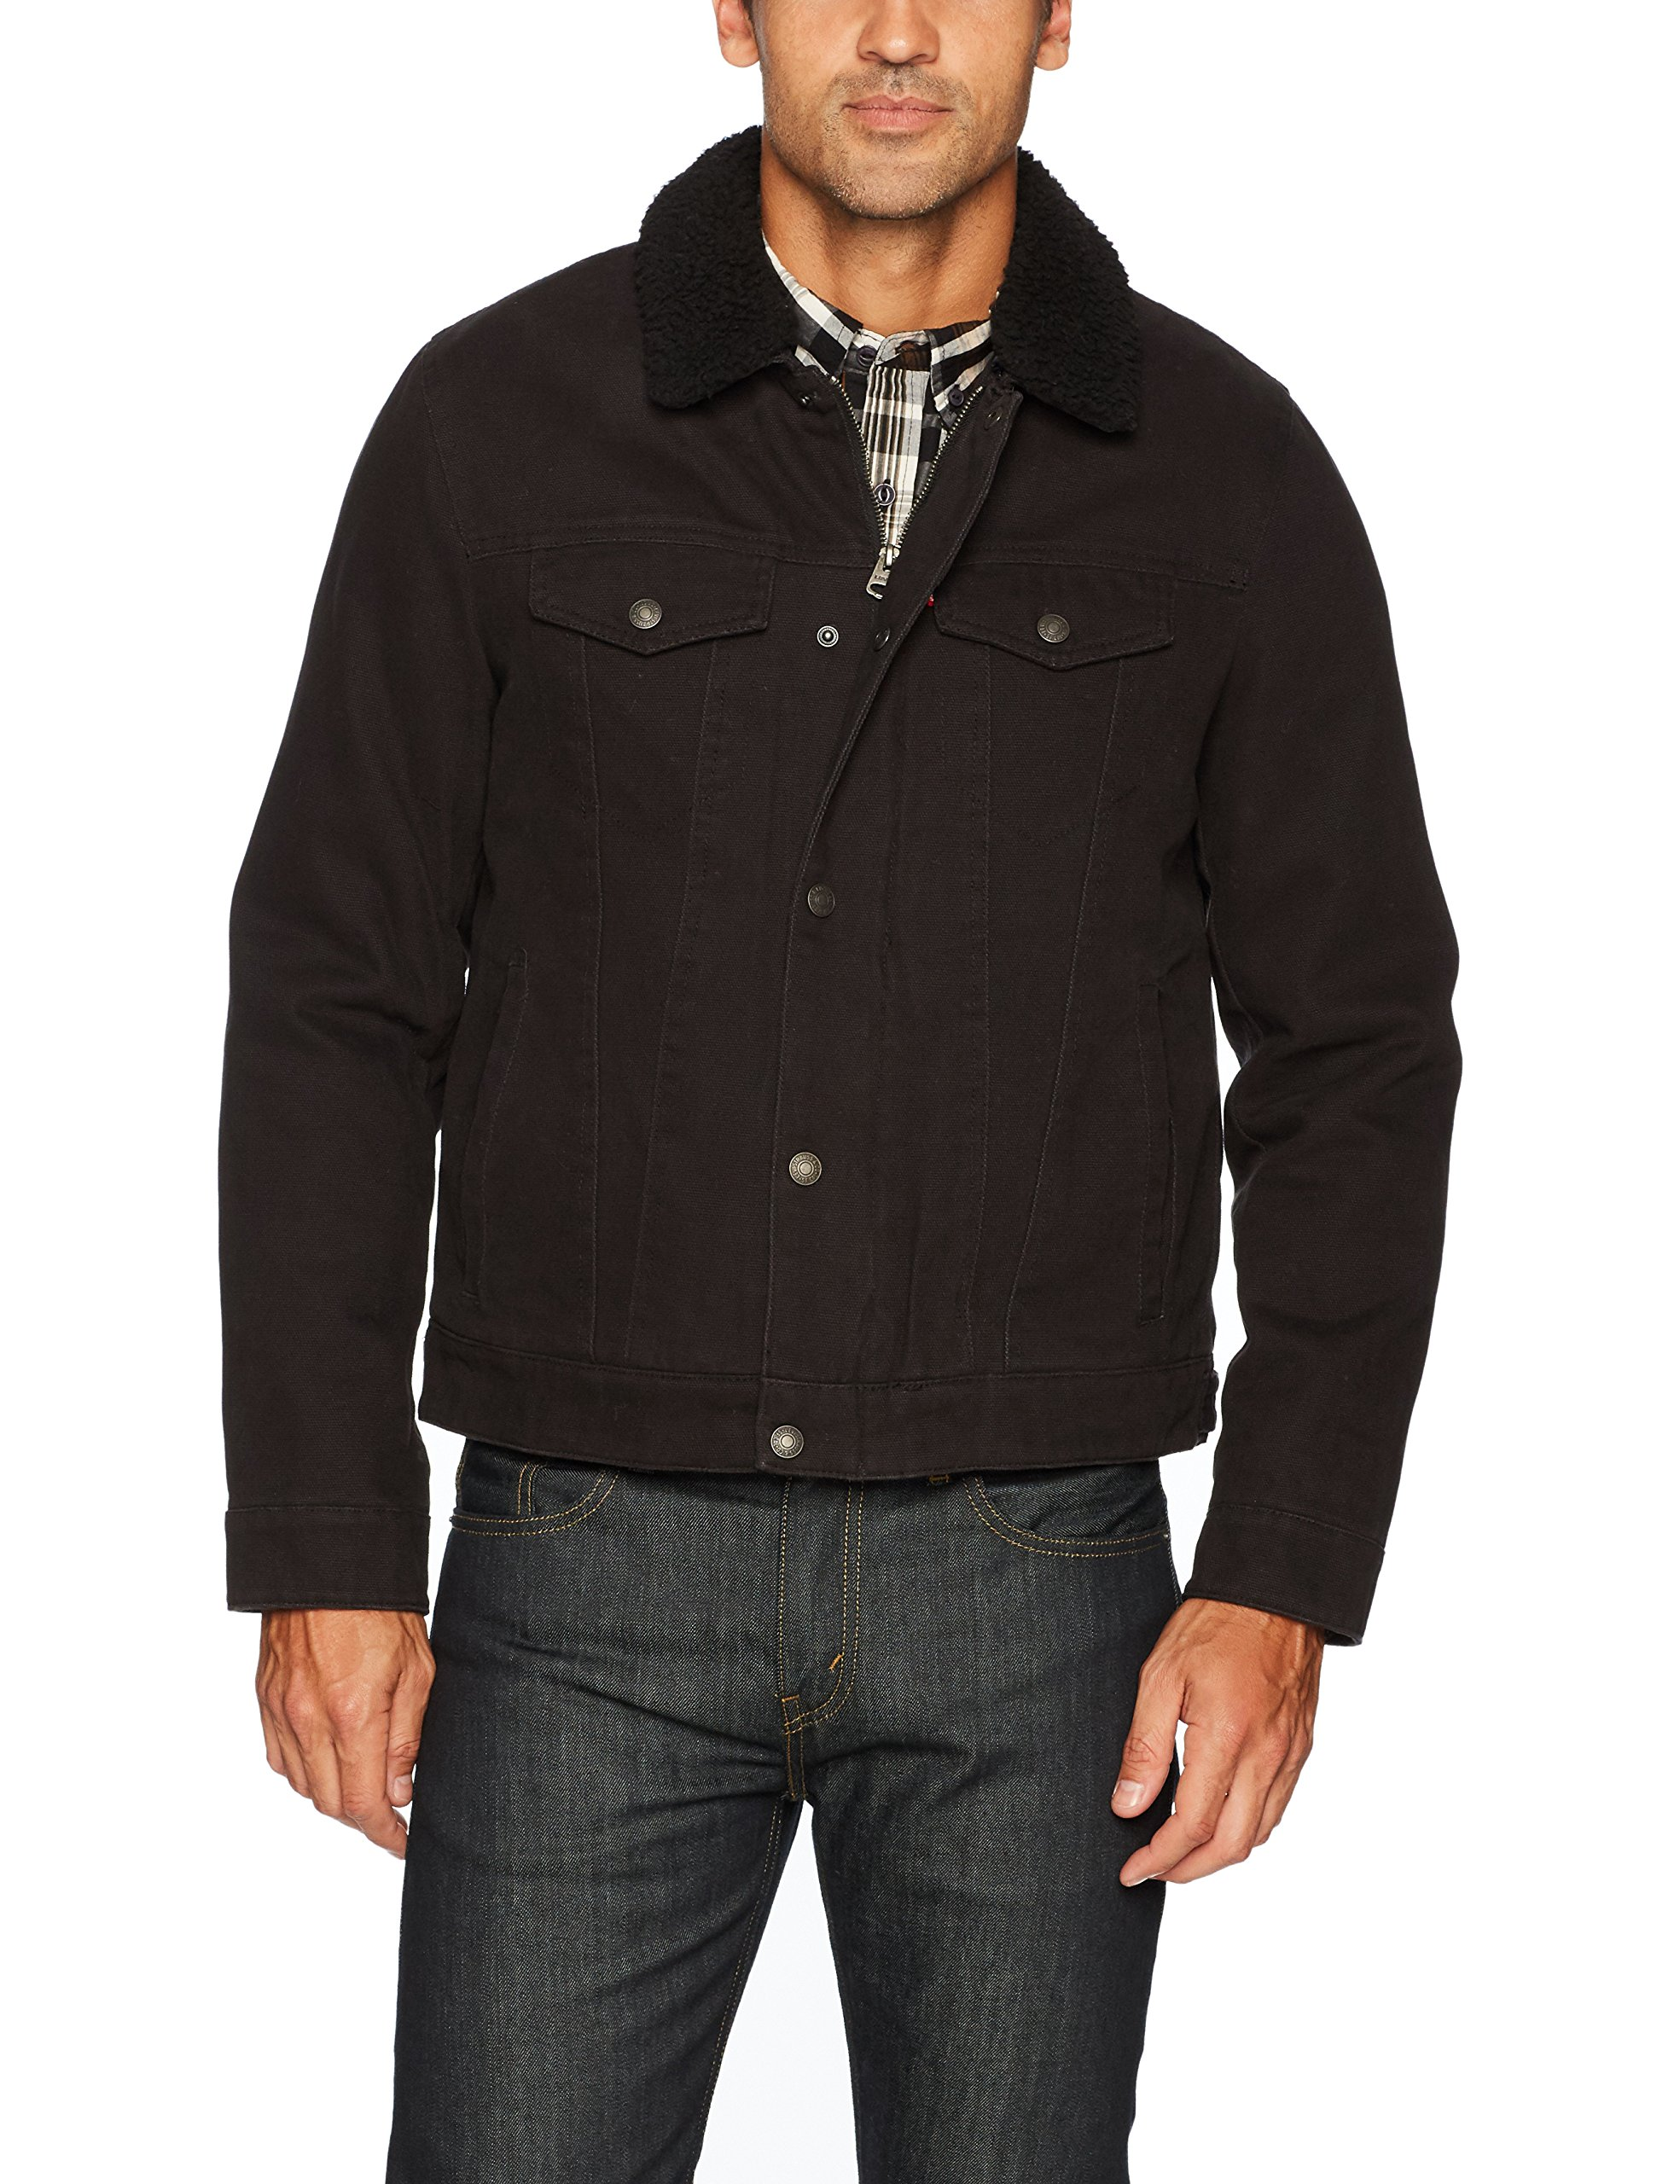 Levi's Men's Cotton Canvas Tucker Jacket with Sherpa Collar, Black, X-Large by Levi's